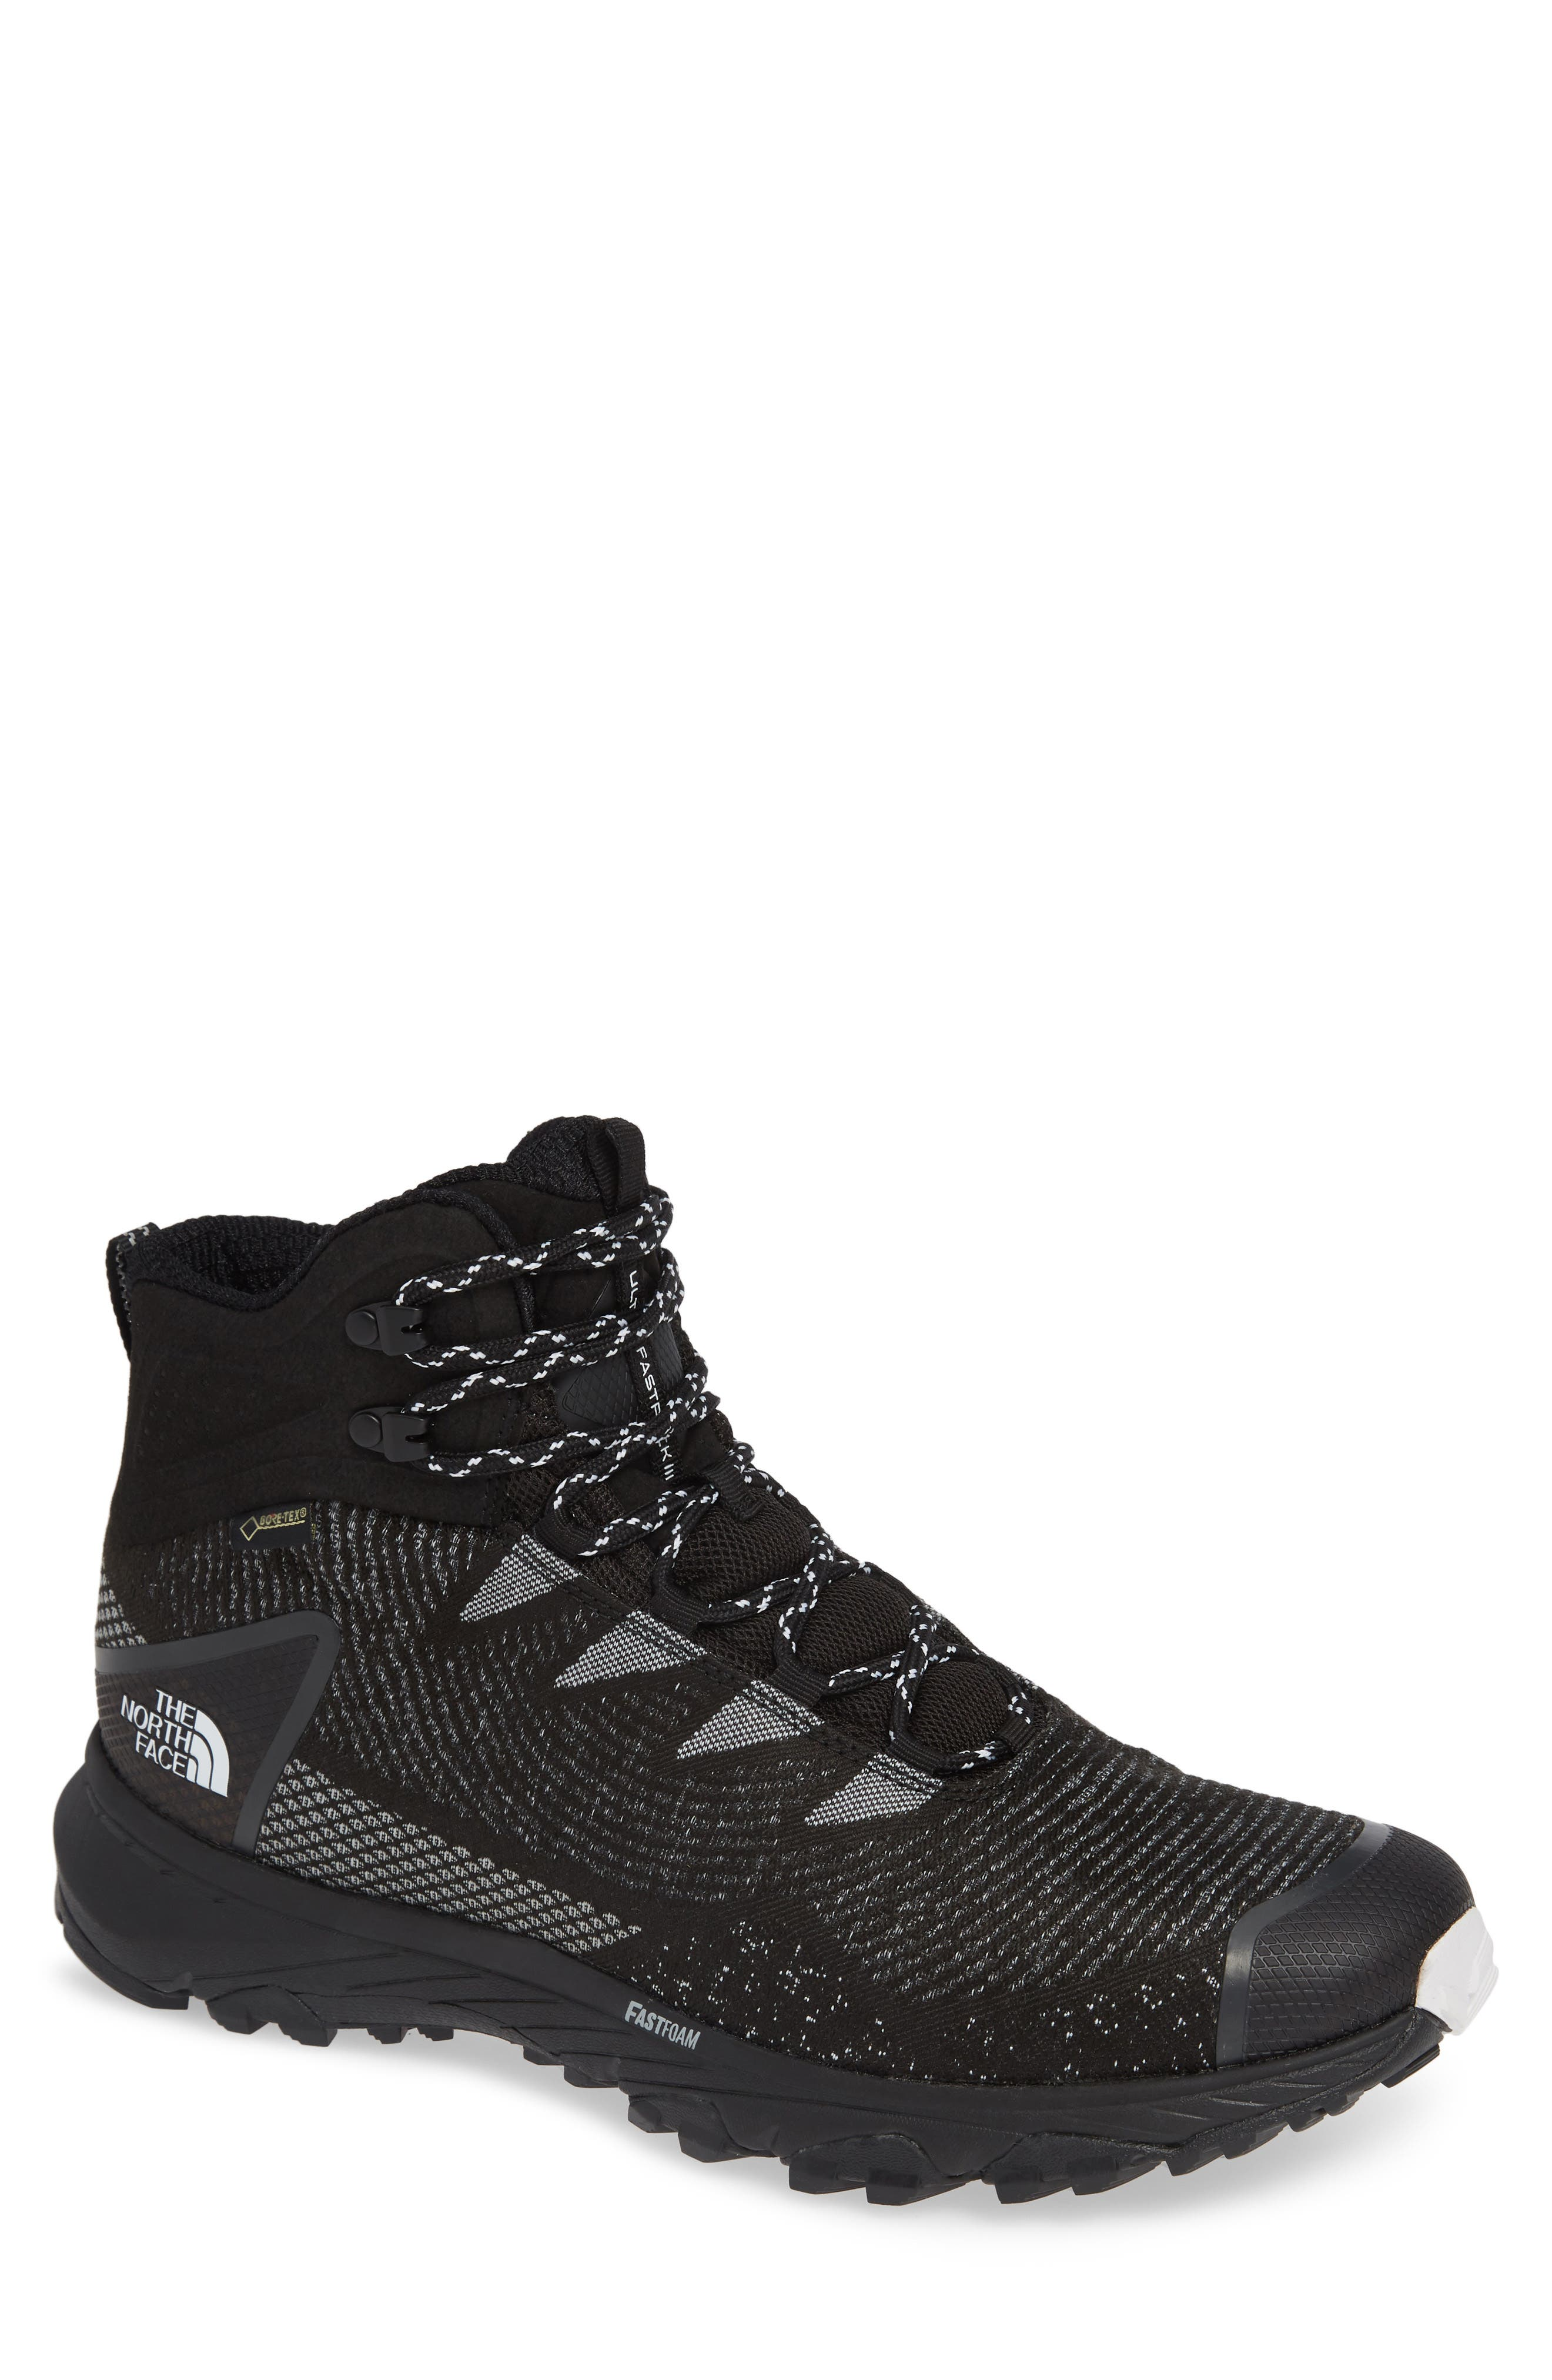 Ultra Fastpack III Mid Gore-Tex<sup>®</sup> Hiking Boot,                             Main thumbnail 1, color,                             BLACK/ WHITE